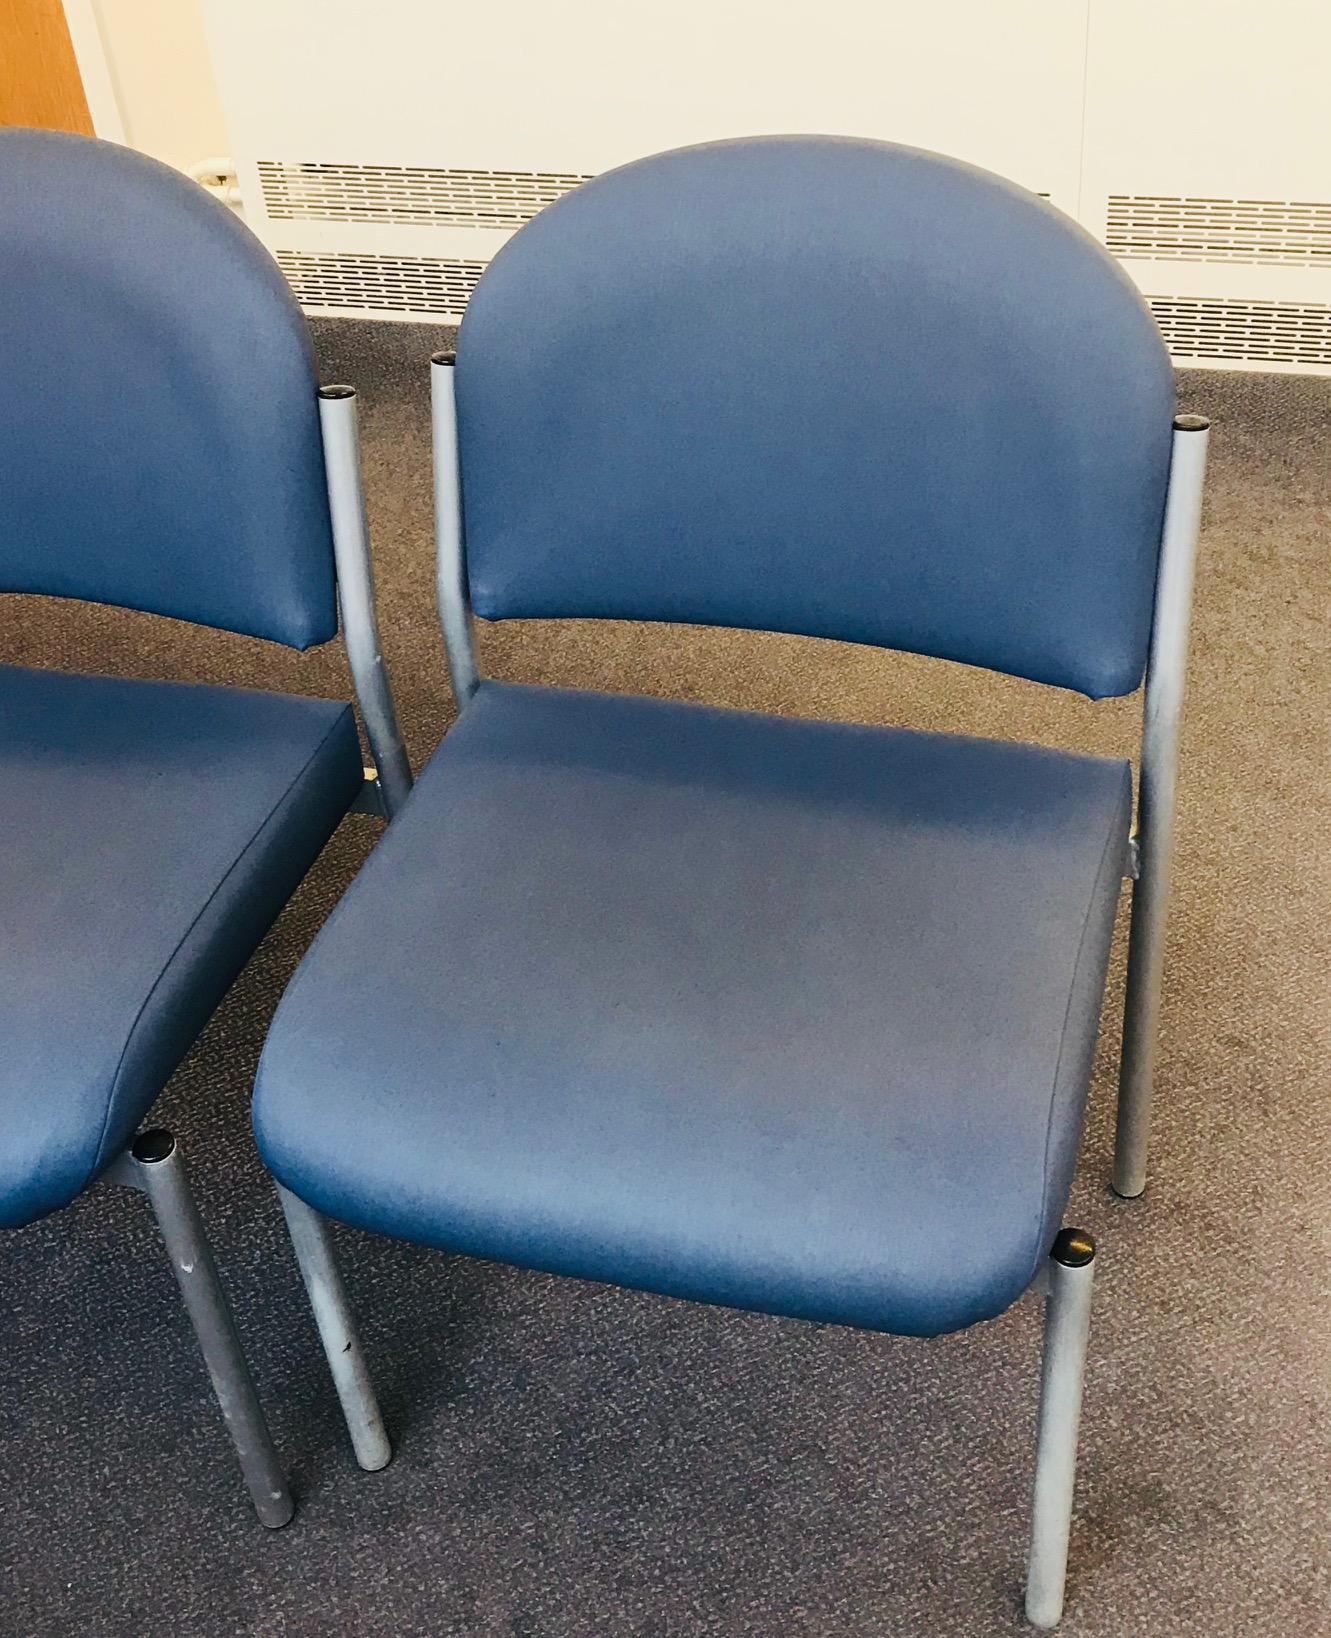 Wipe Clean Chairs – these are now available in some of our surgeries